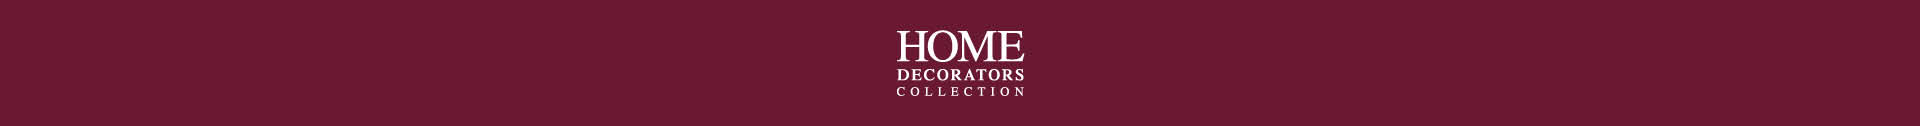 Home Decorators Collection logo banner